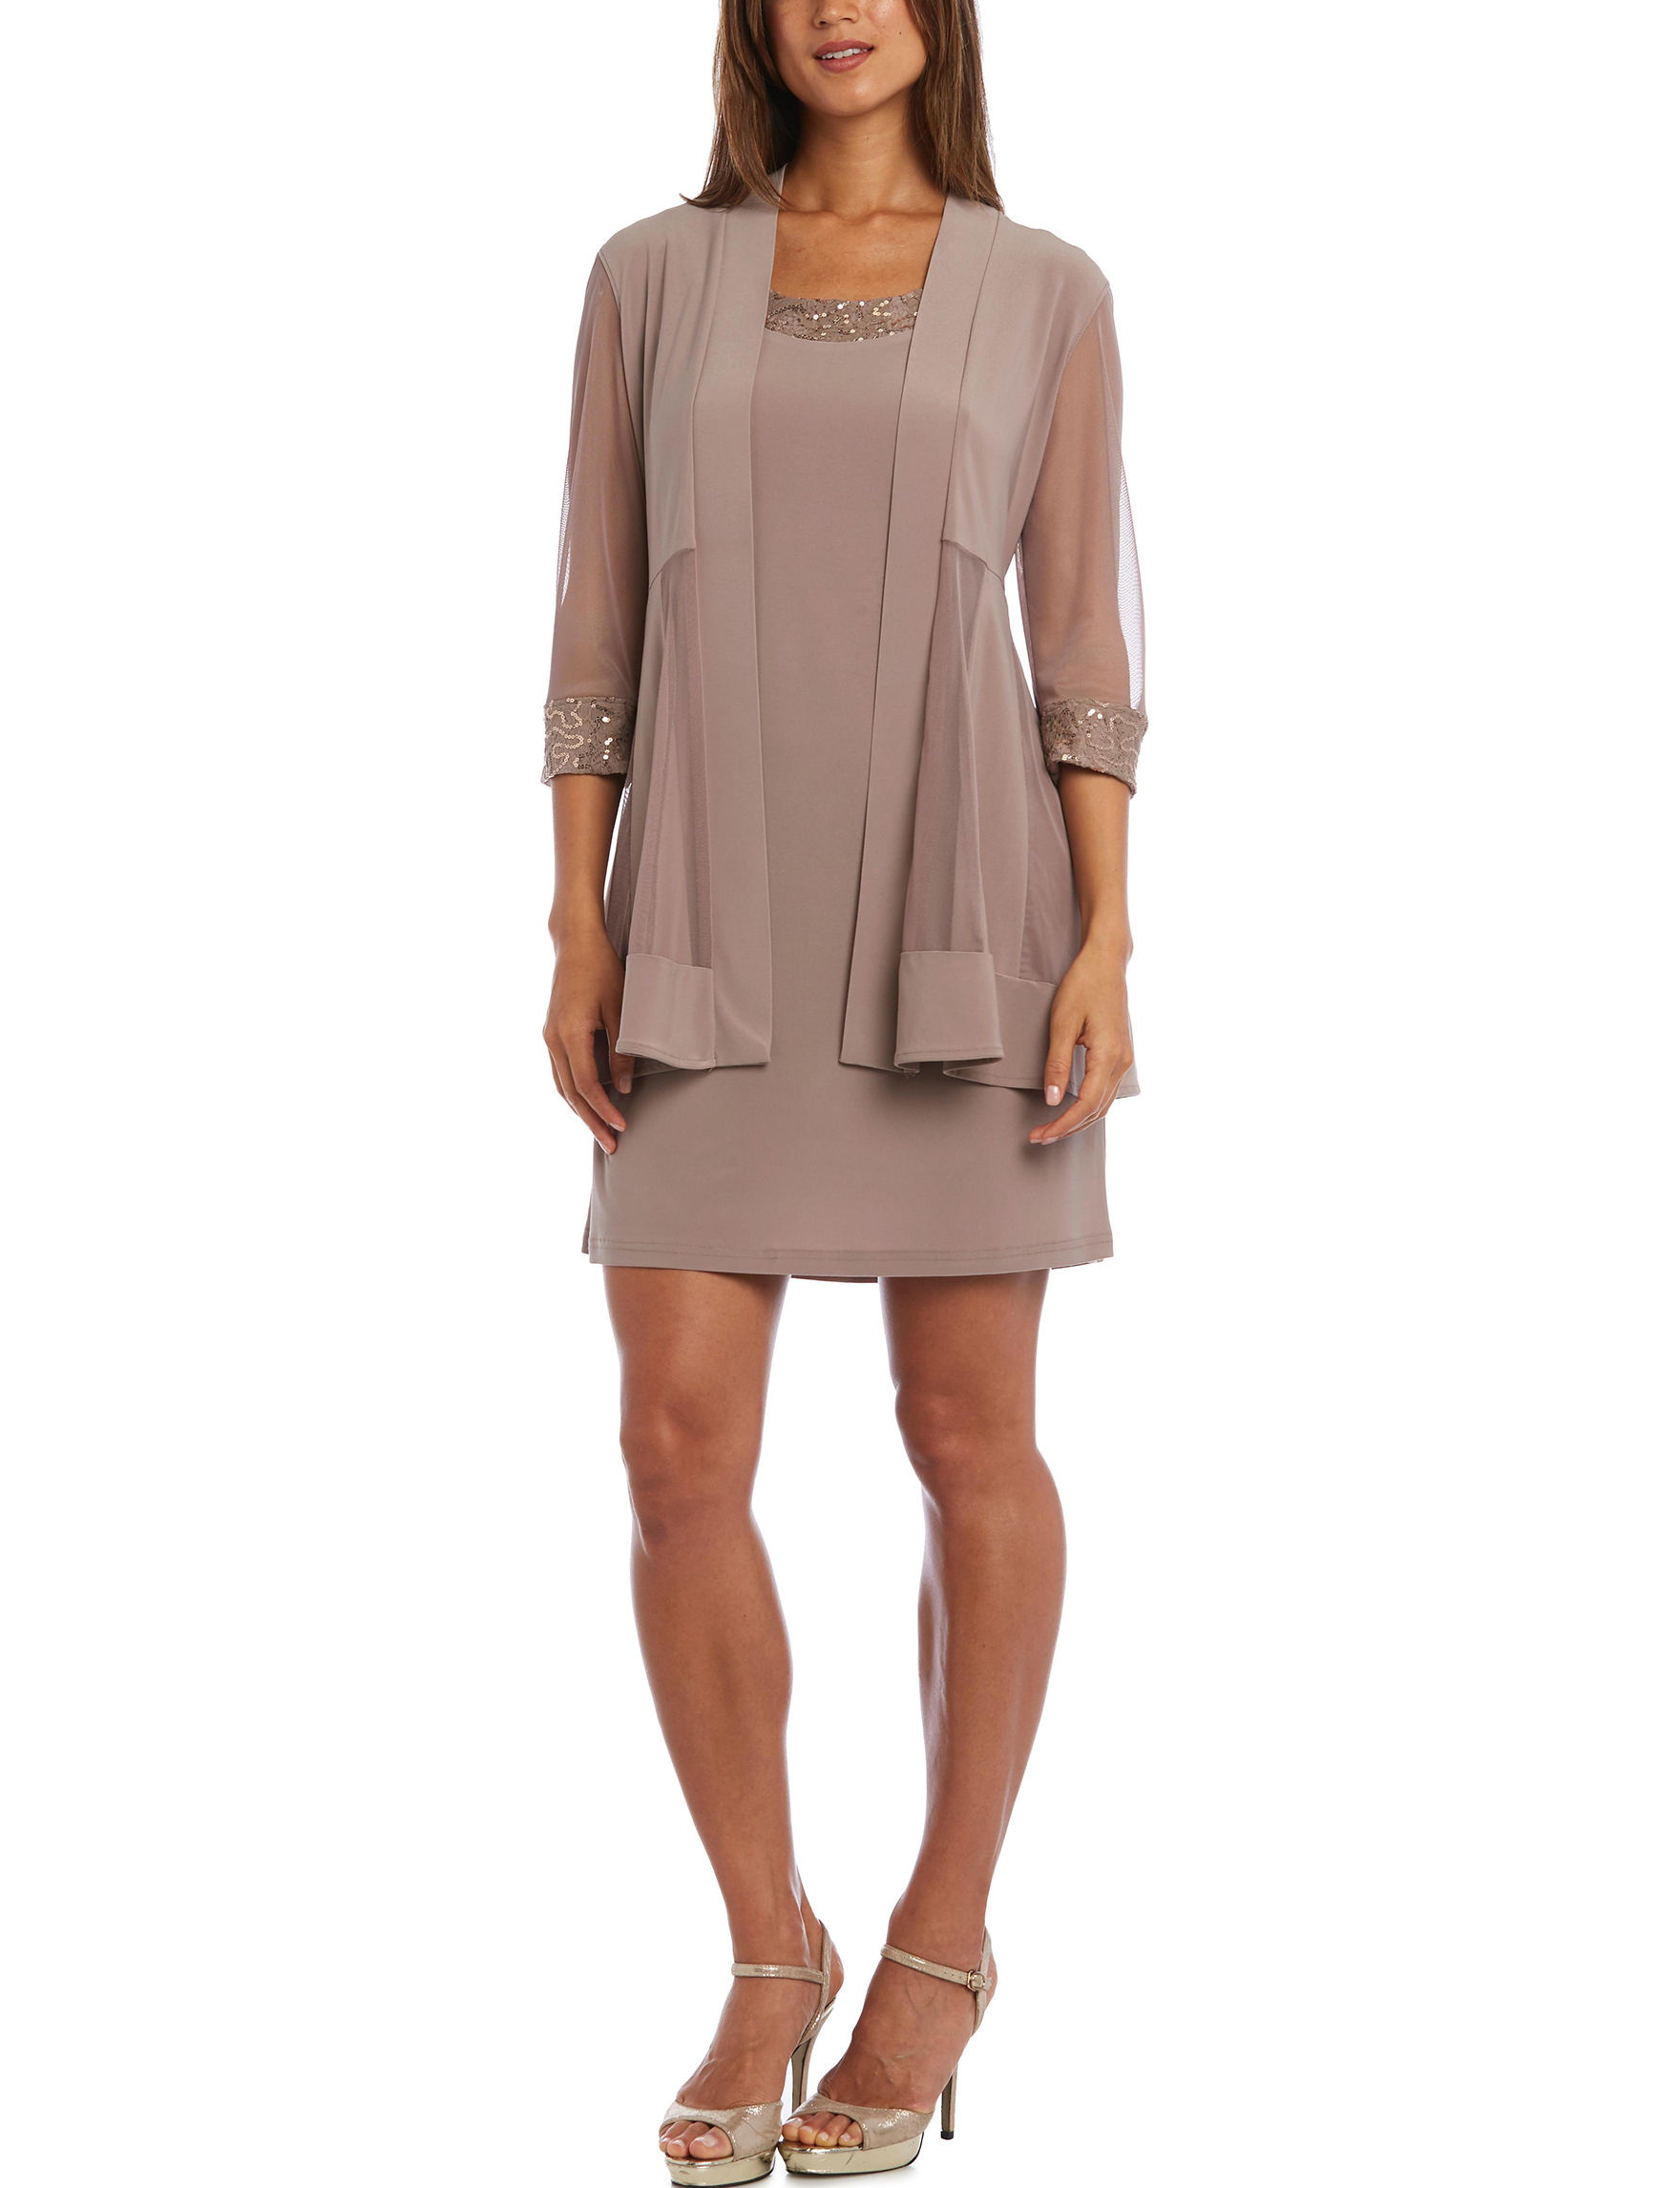 R & M Richards Taupe Cocktail & Party Evening & Formal Jacket Dresses